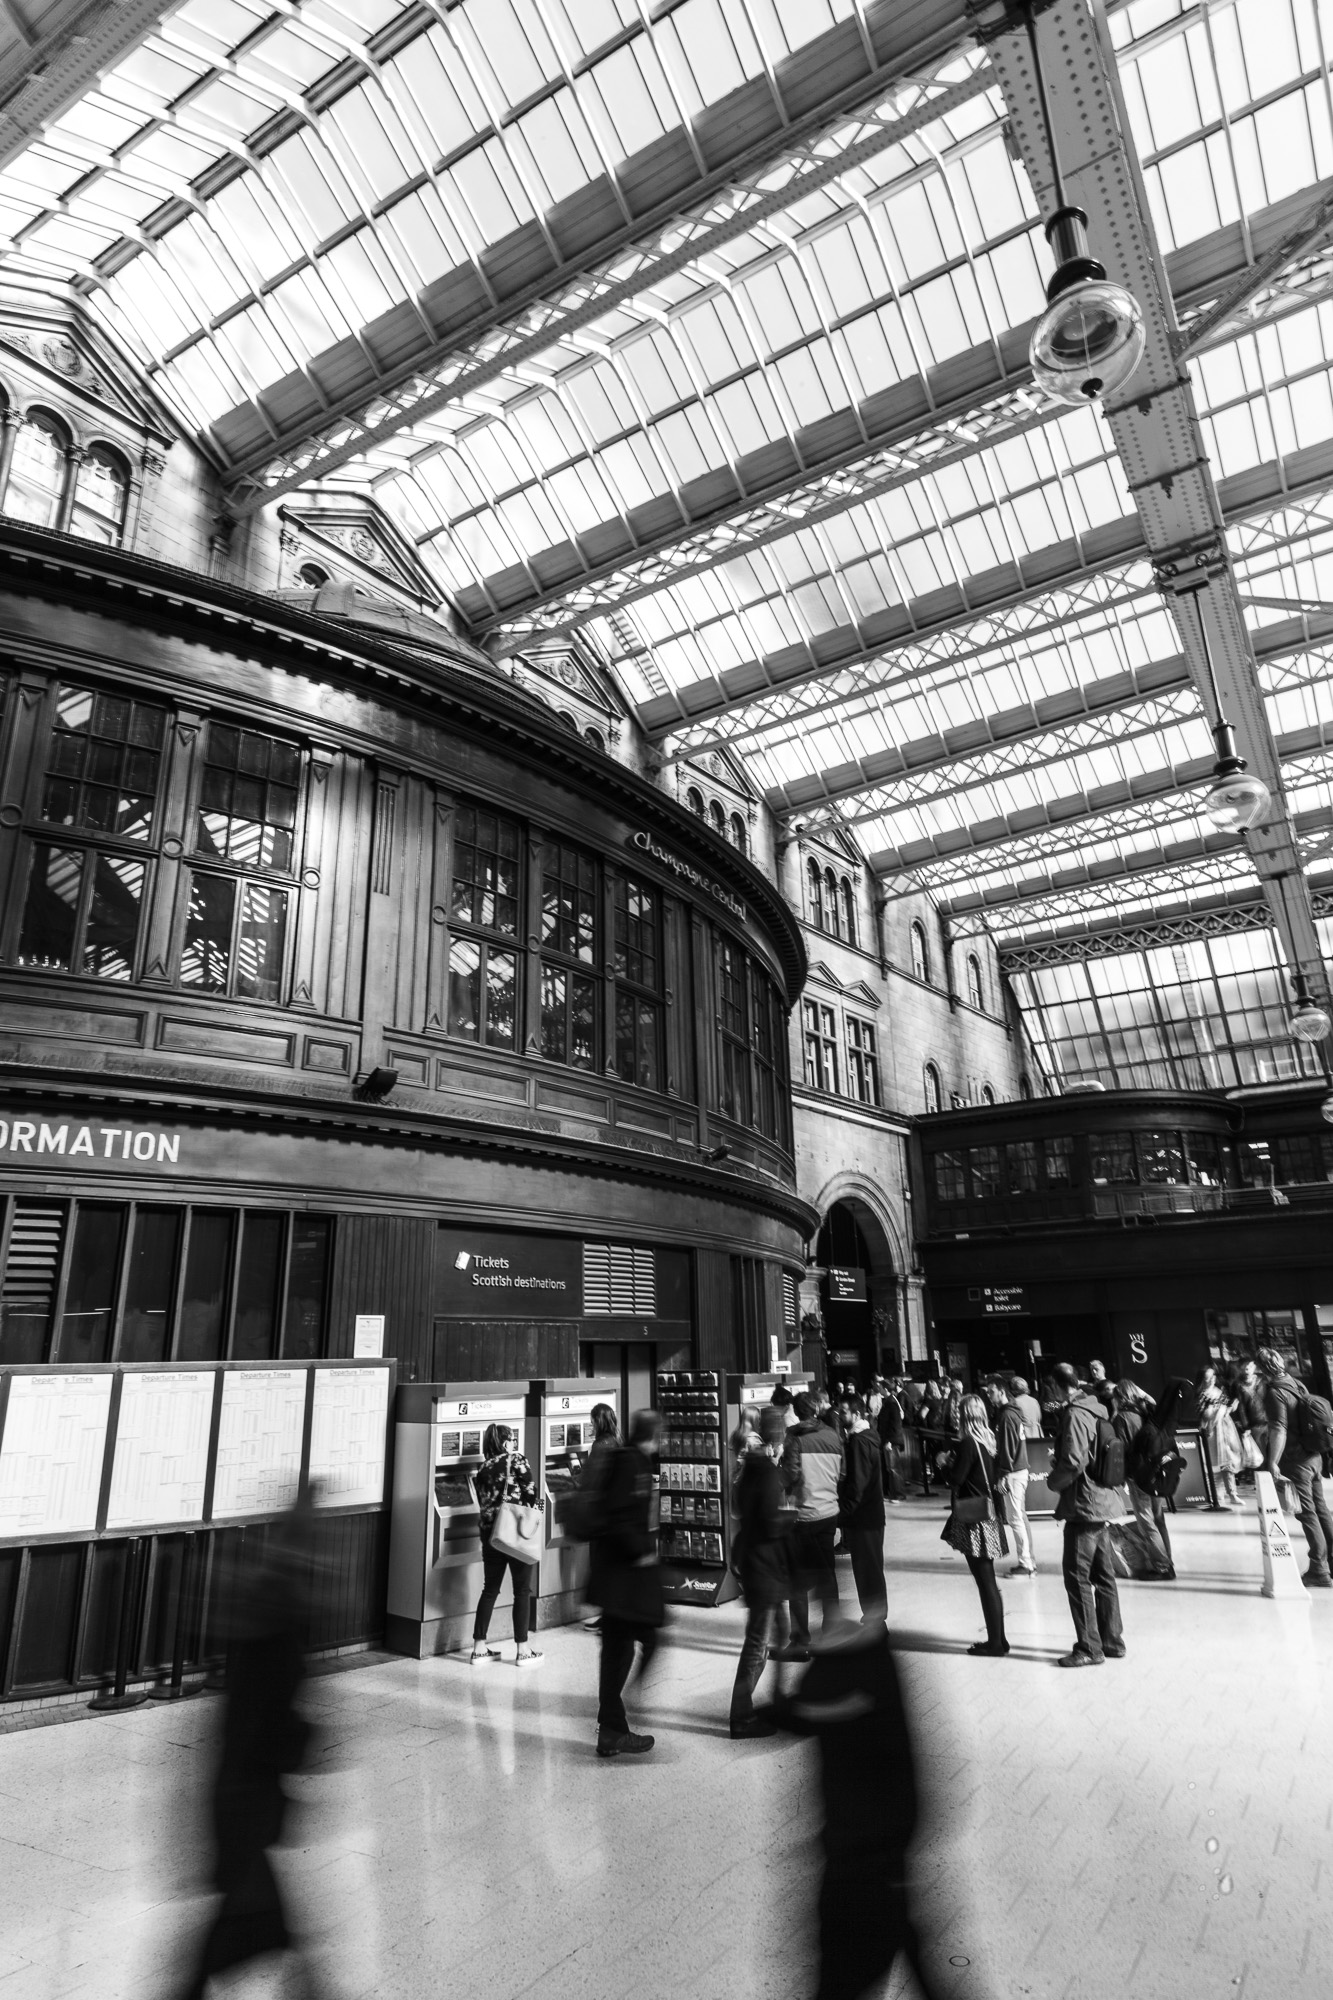 Glasgow Central